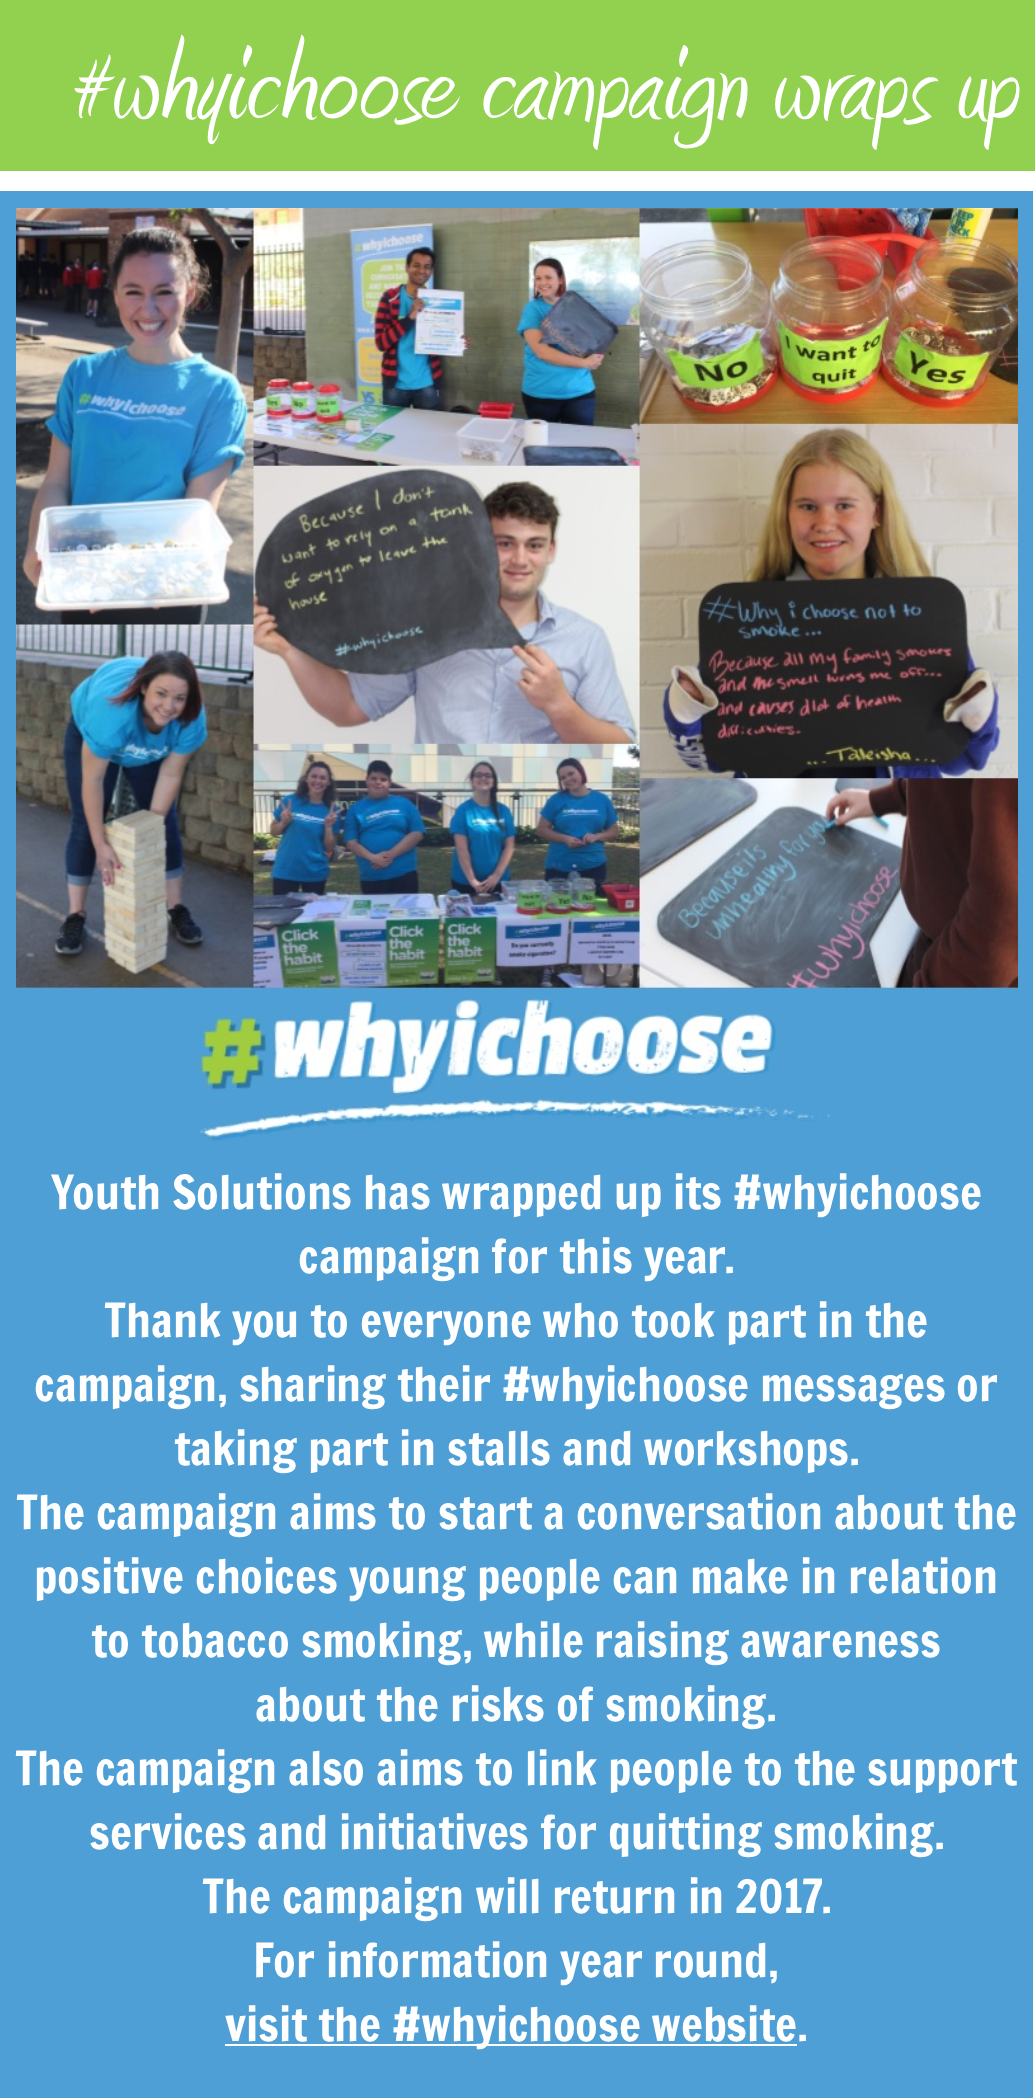 #whyichoose campaign wraps up for 2016